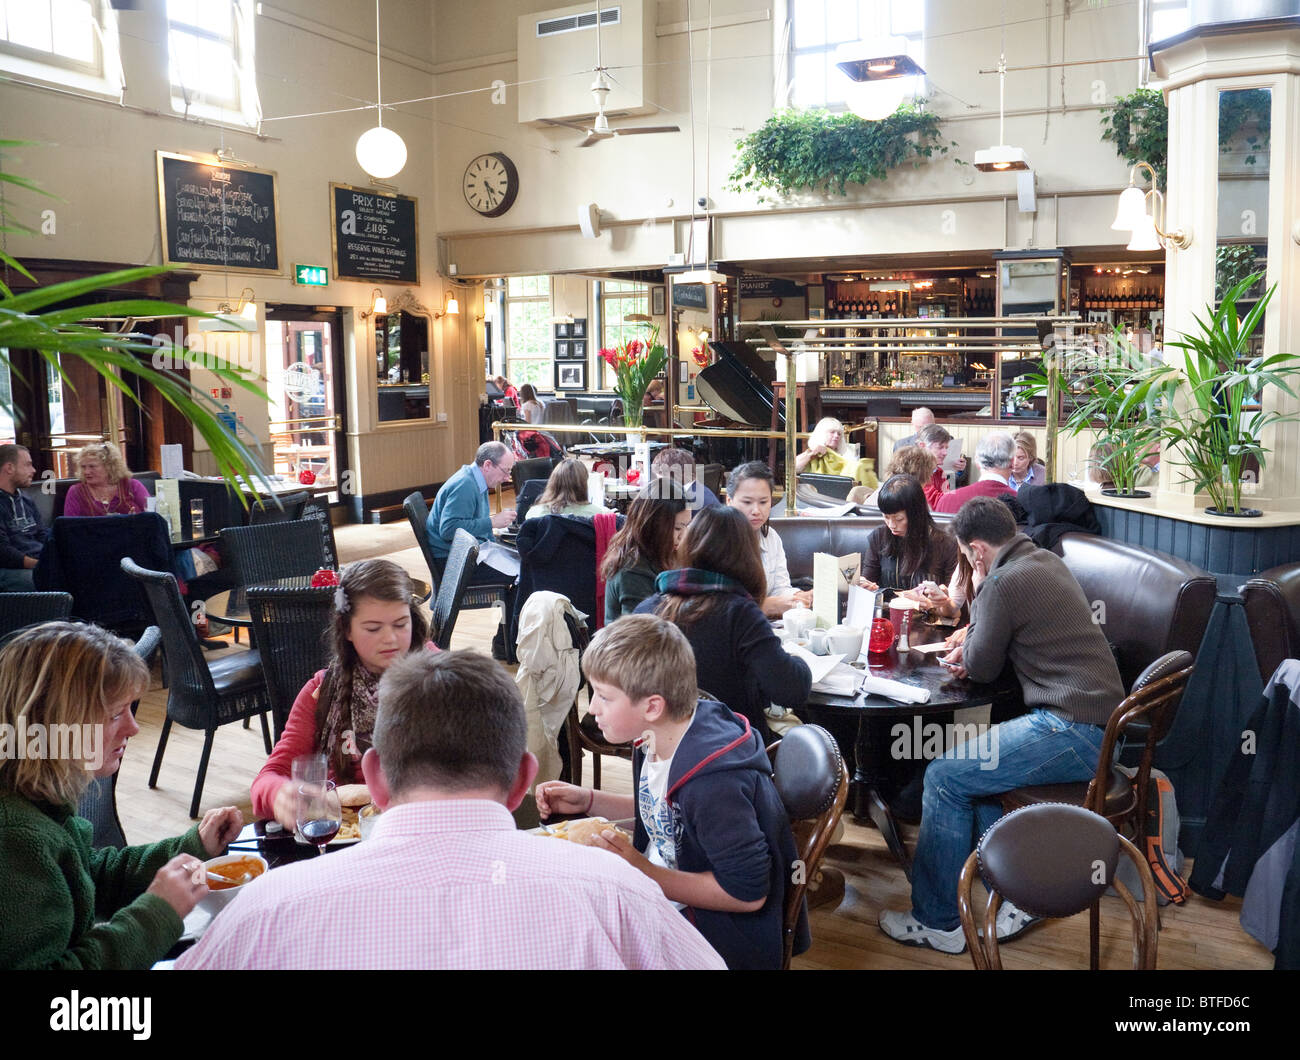 People eating and drinking in Browns bar and Brasserie restaurant, trumpington St, Cambridge UK - Stock Image